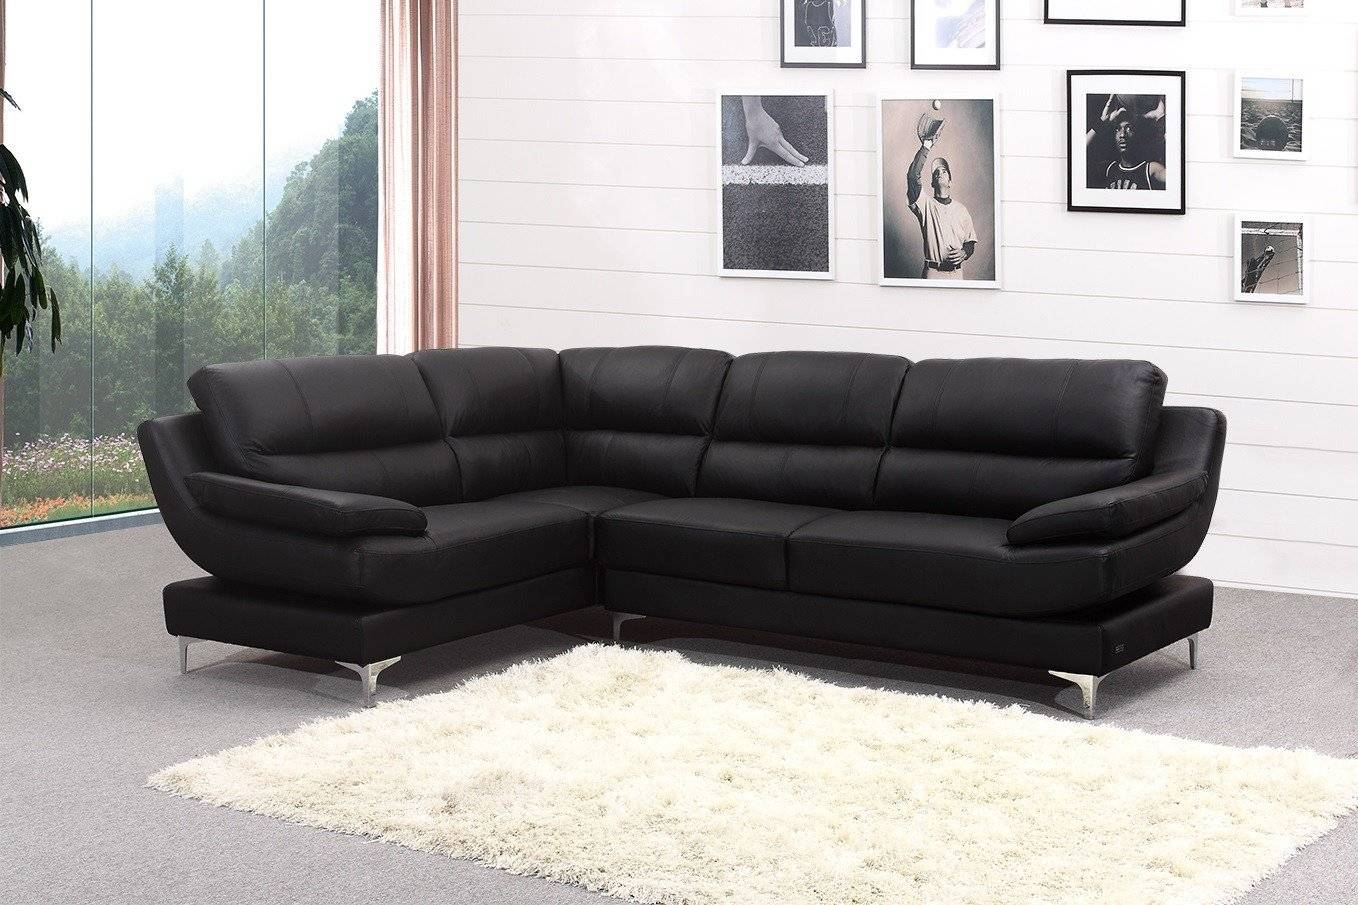 Modern Leather Corner Sofas With Modular Leather Corner Sofa within Large Black Leather Corner Sofas (Image 23 of 30)